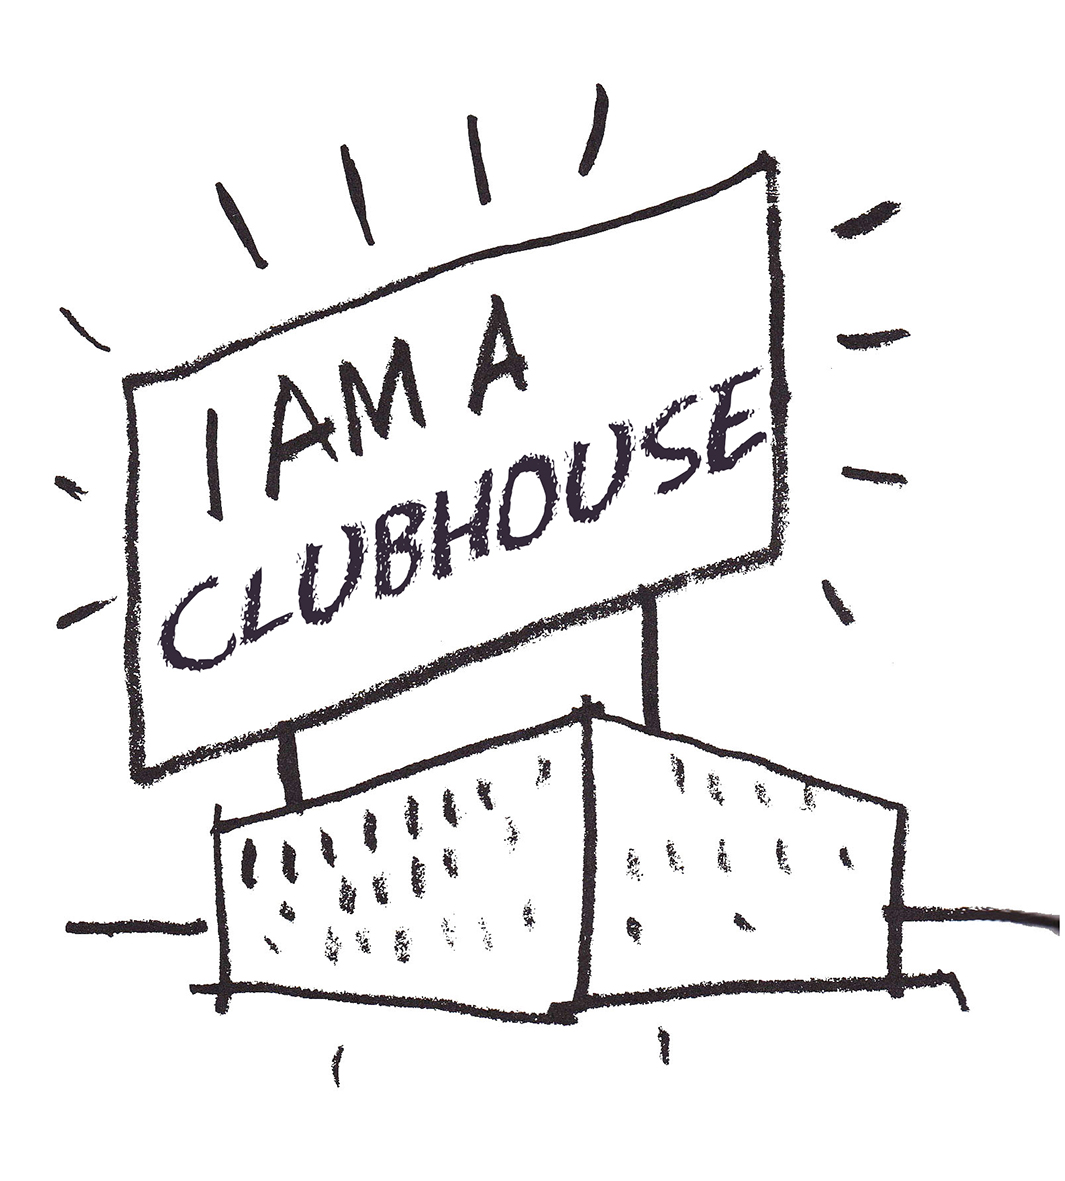 i-am-clubhouse_kl